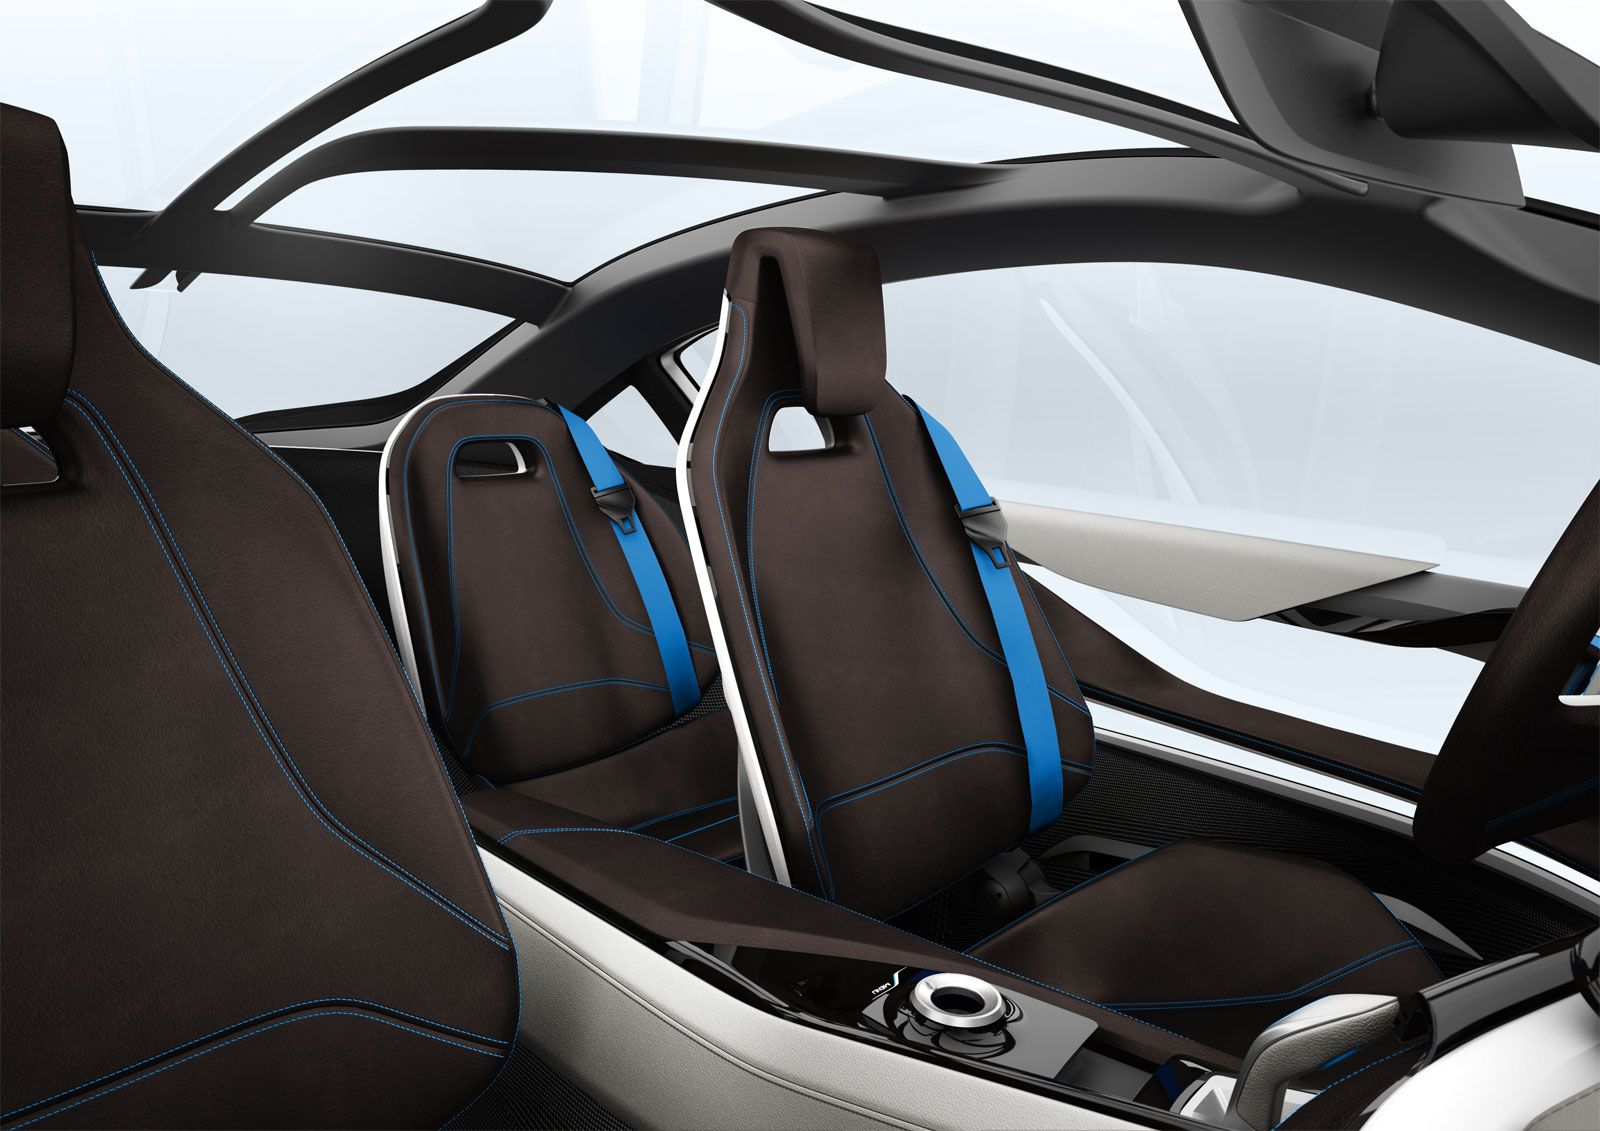 Inside The Bmw I8 Seen On Mi4 Movie Cool Vehicles Cars Bmw